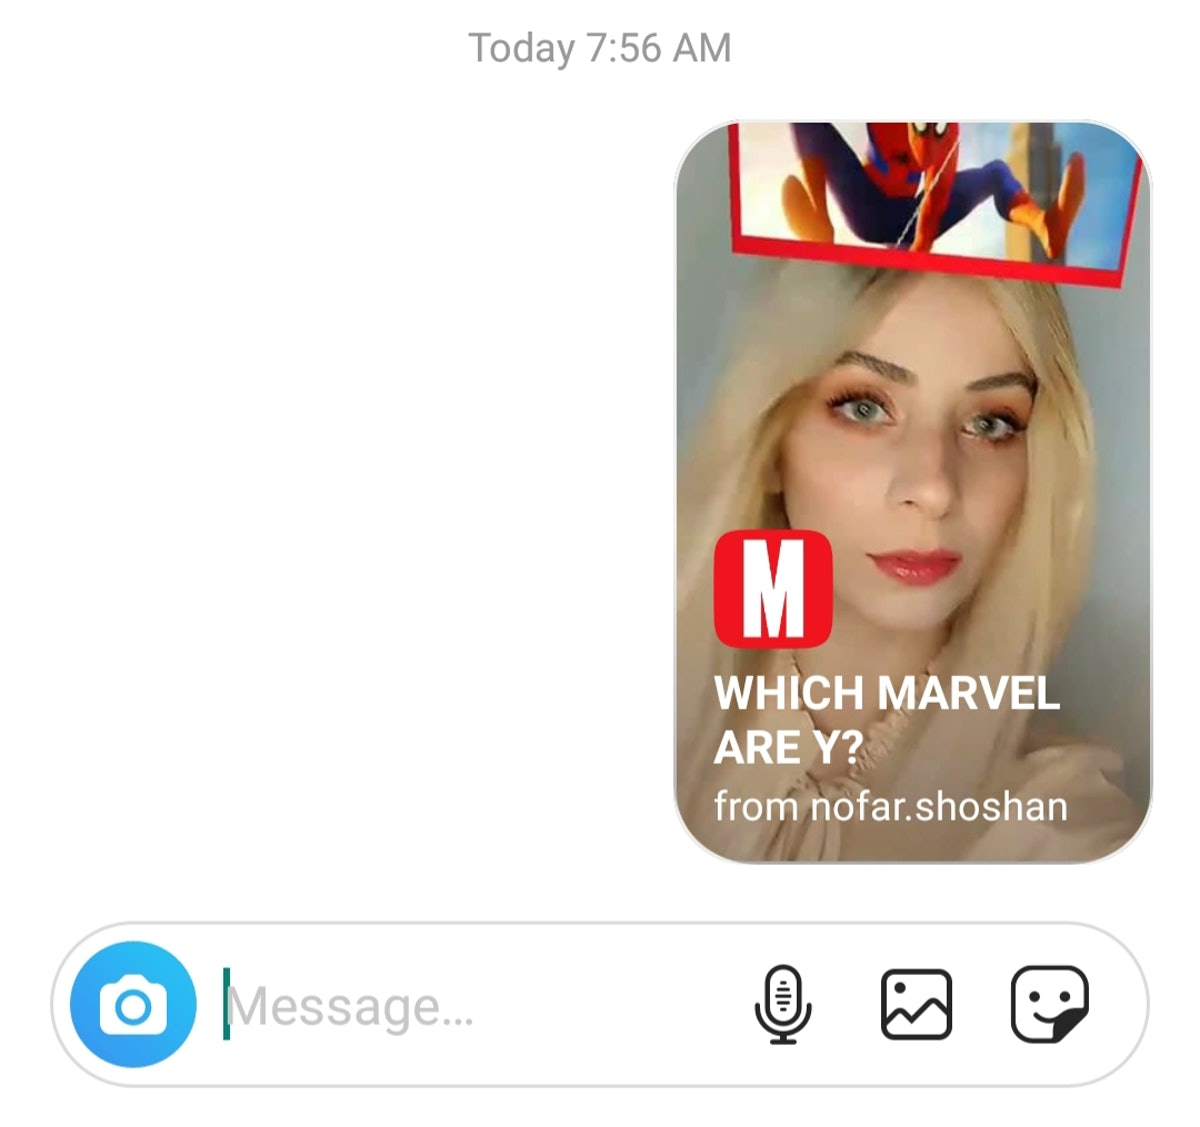 Here's How To Get The 'Avengers' Instagram Filter to see which Marvel character you are.